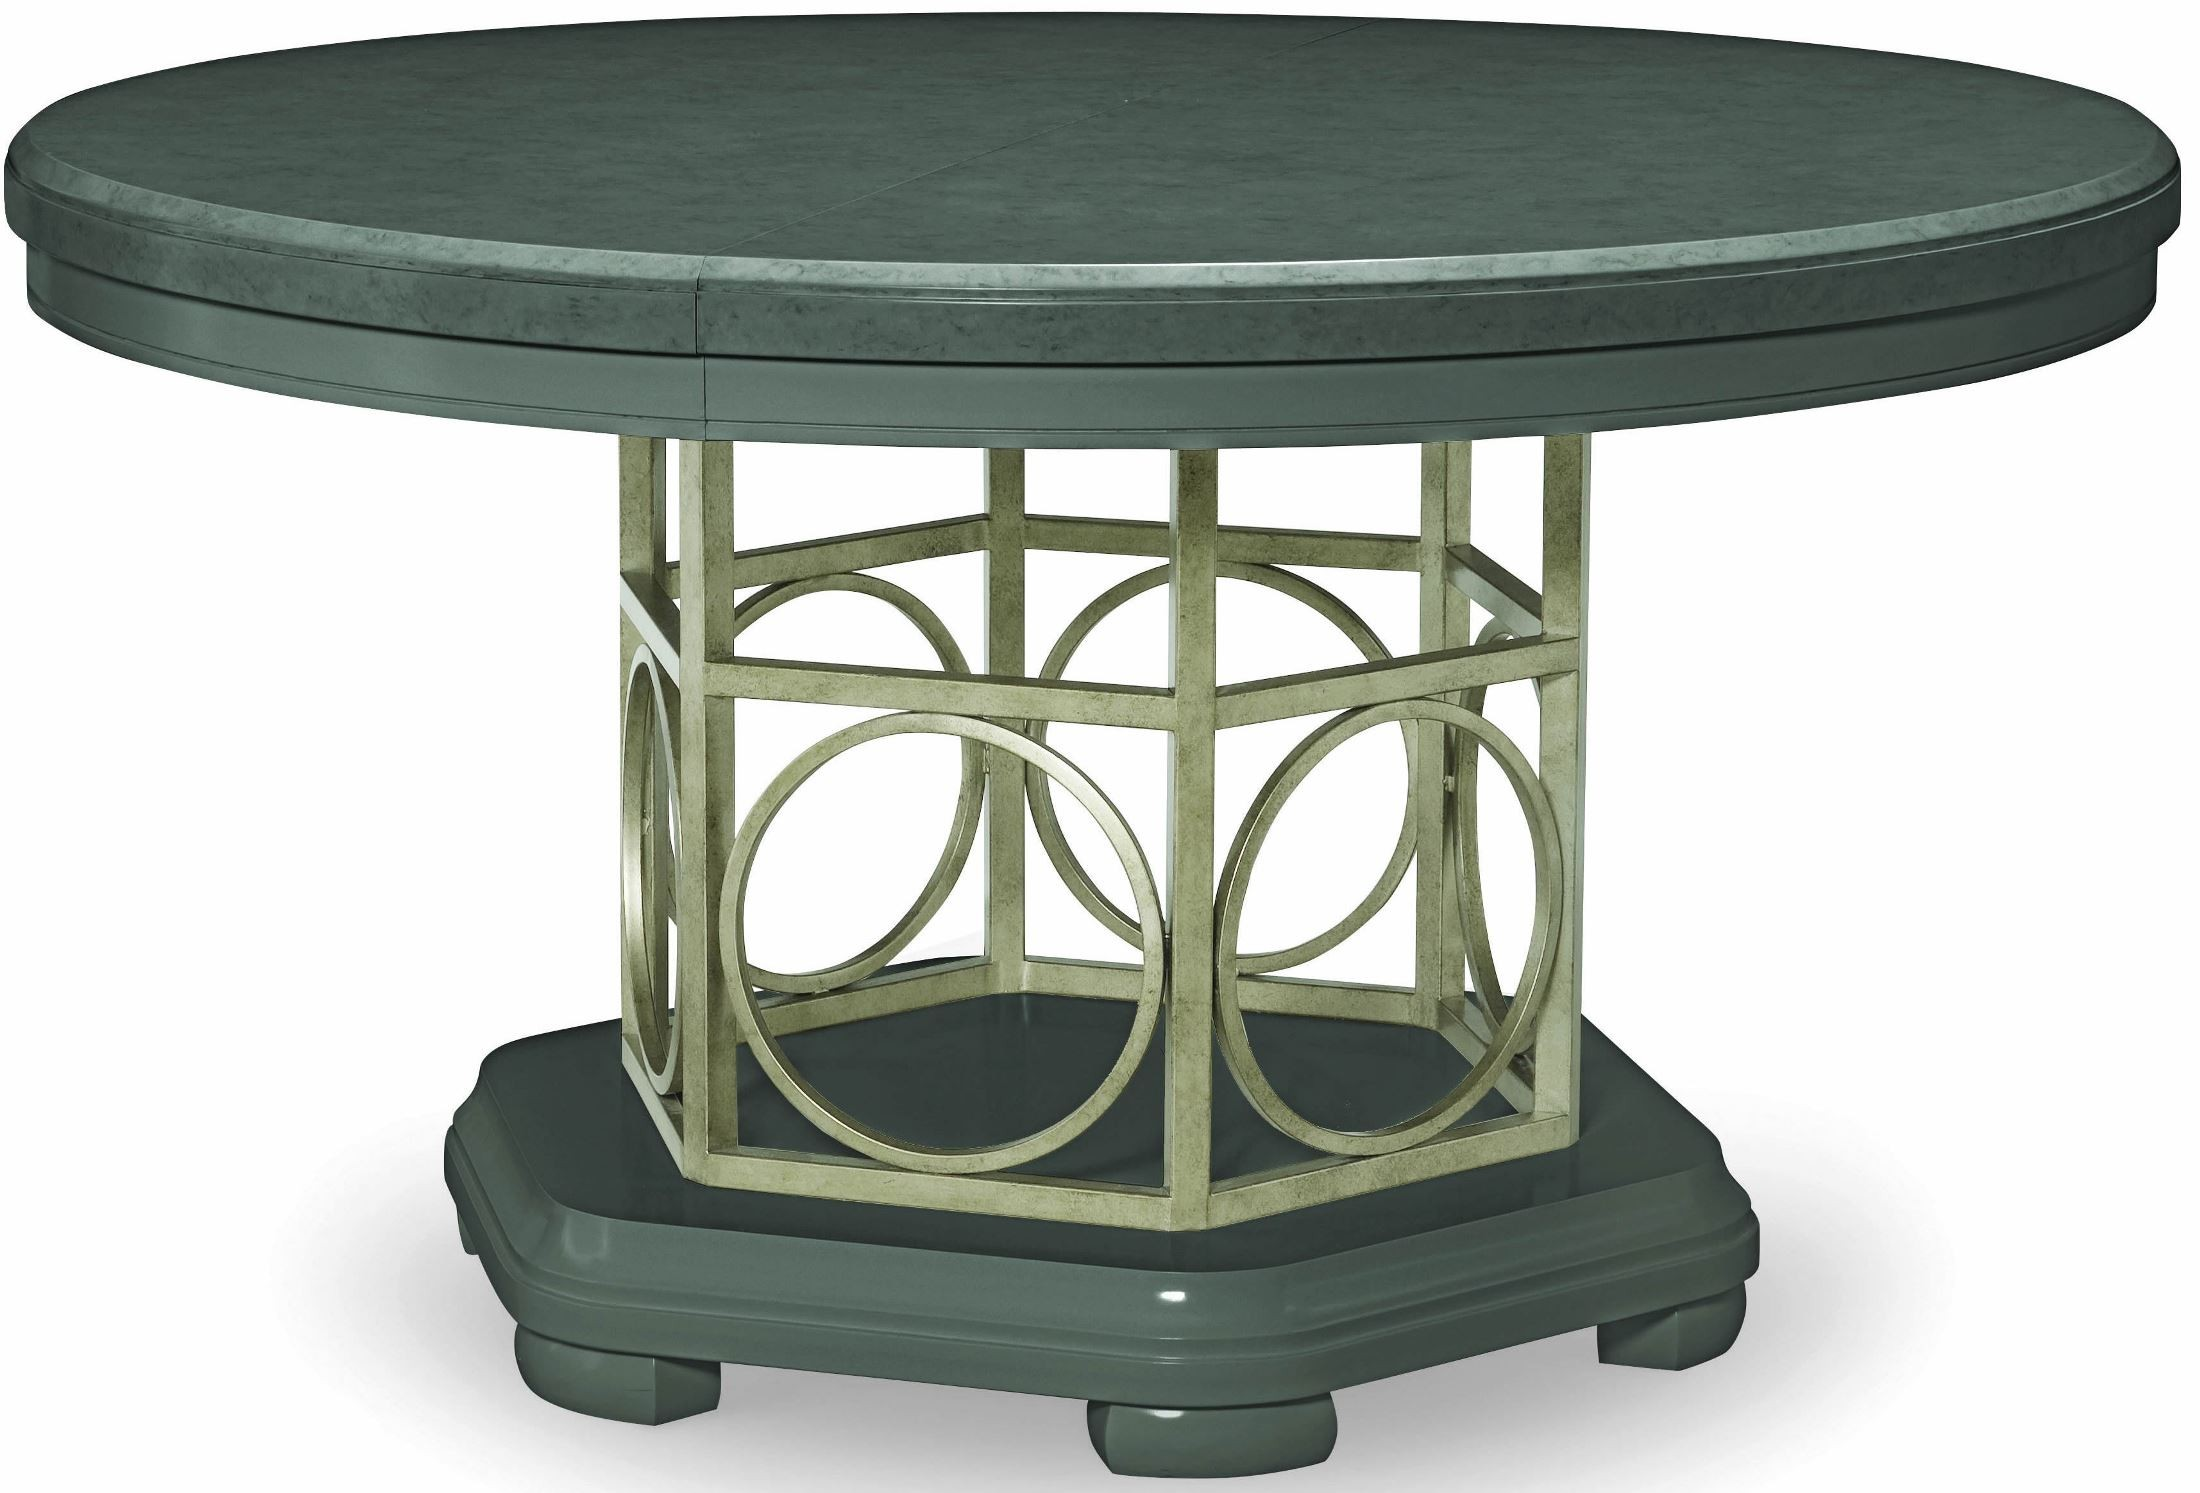 Tower Suite Moonstone Extendable Round Pedestal Dining  : 5011521ks from colemanfurniture.com size 2200 x 1493 jpeg 320kB